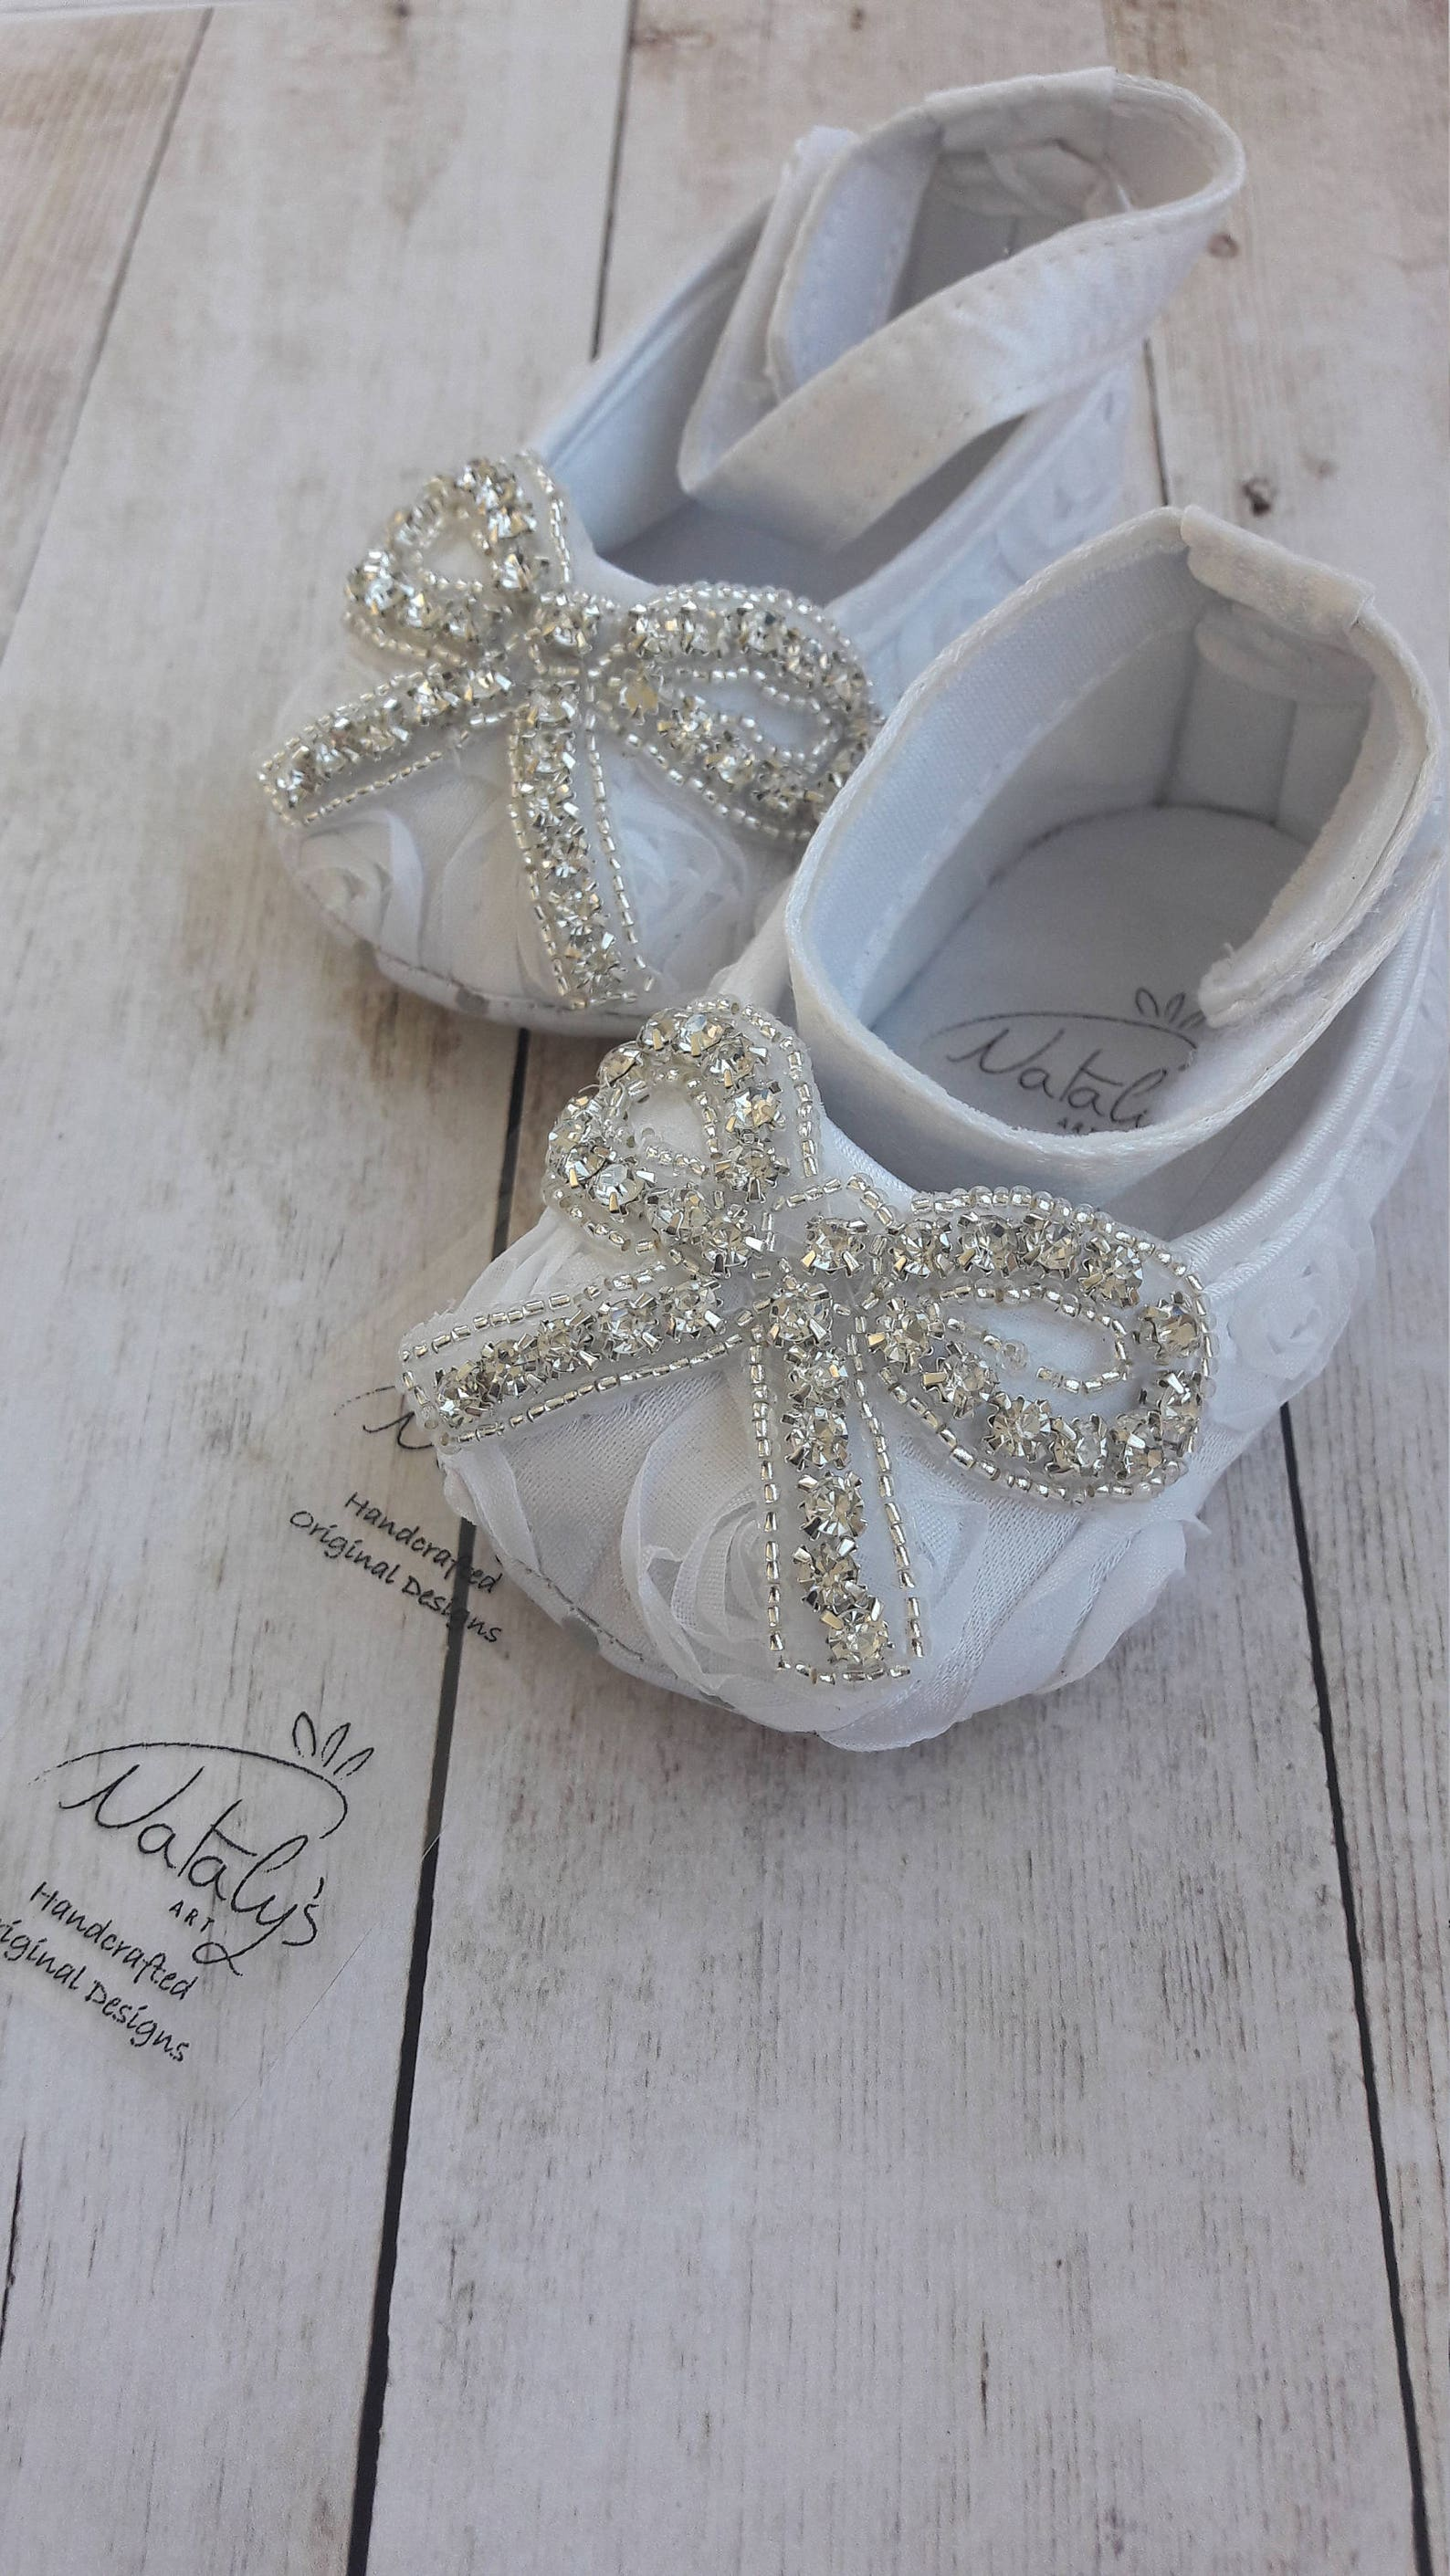 baby crystal shoes baby wedding shoes baby baptism shoes christening girl shoes toddler ballet shoes flower girl shoes white cry